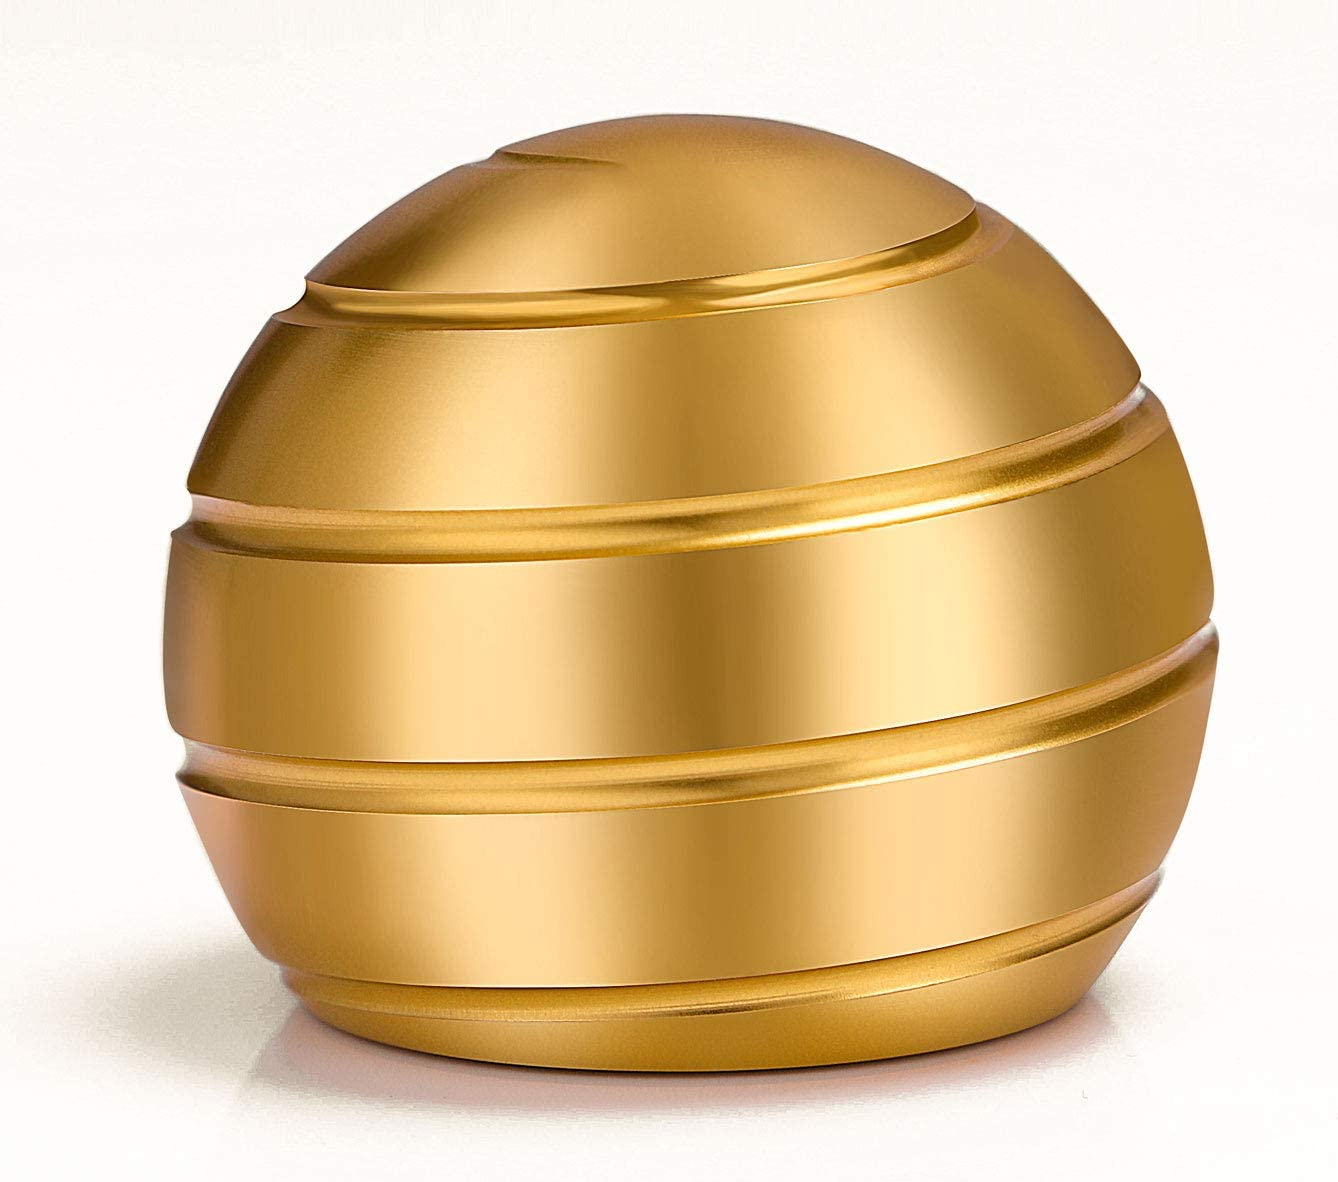 VEFINDOR Fidget Toys for Adults Stress Relief, Desk Toys for Office Conversation Piece, Kinetic Optical Illusion Balls (Gold)